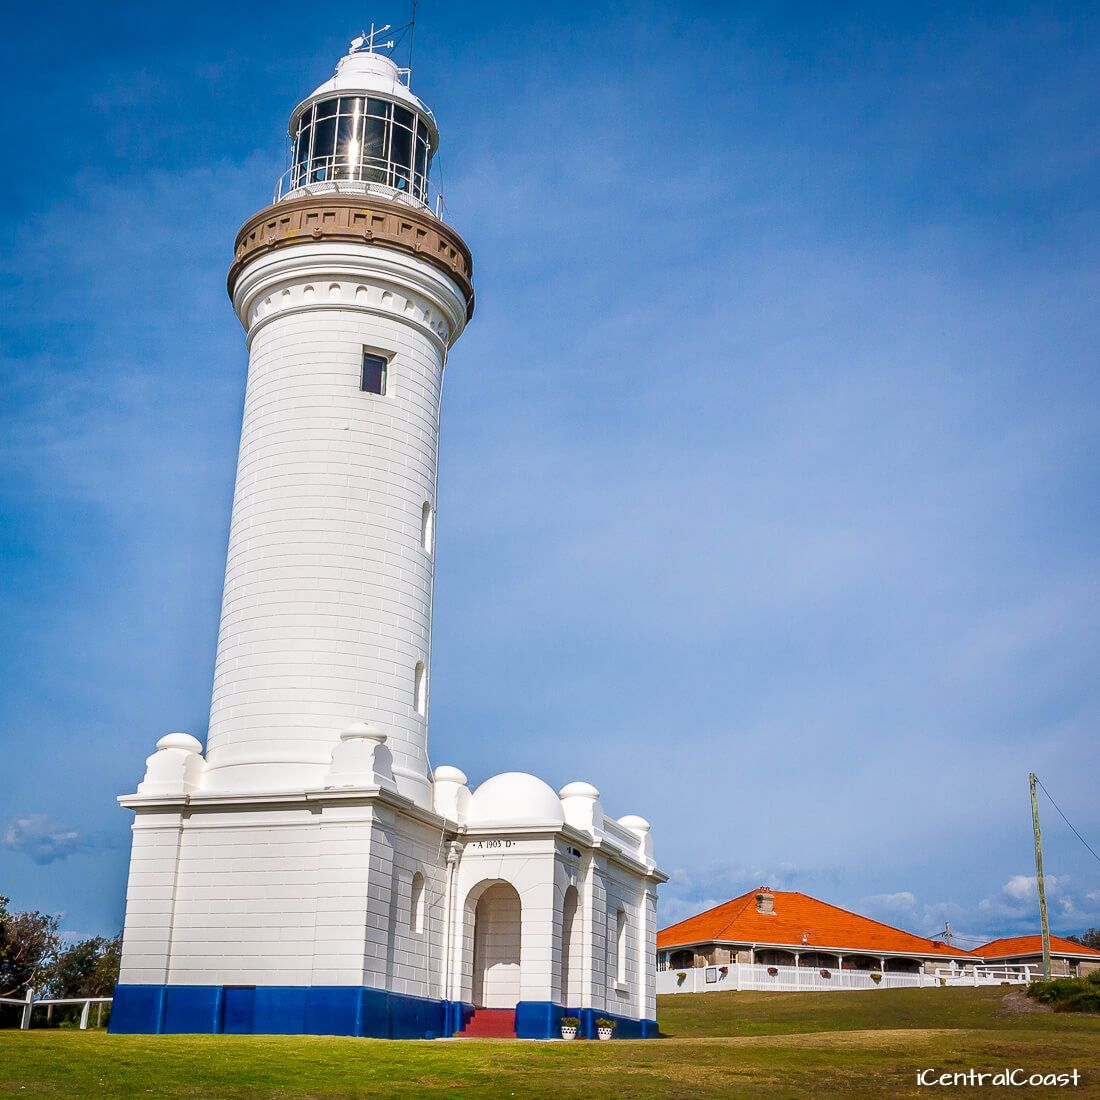 Central Coast free attractions: Norah Head Lighthouse